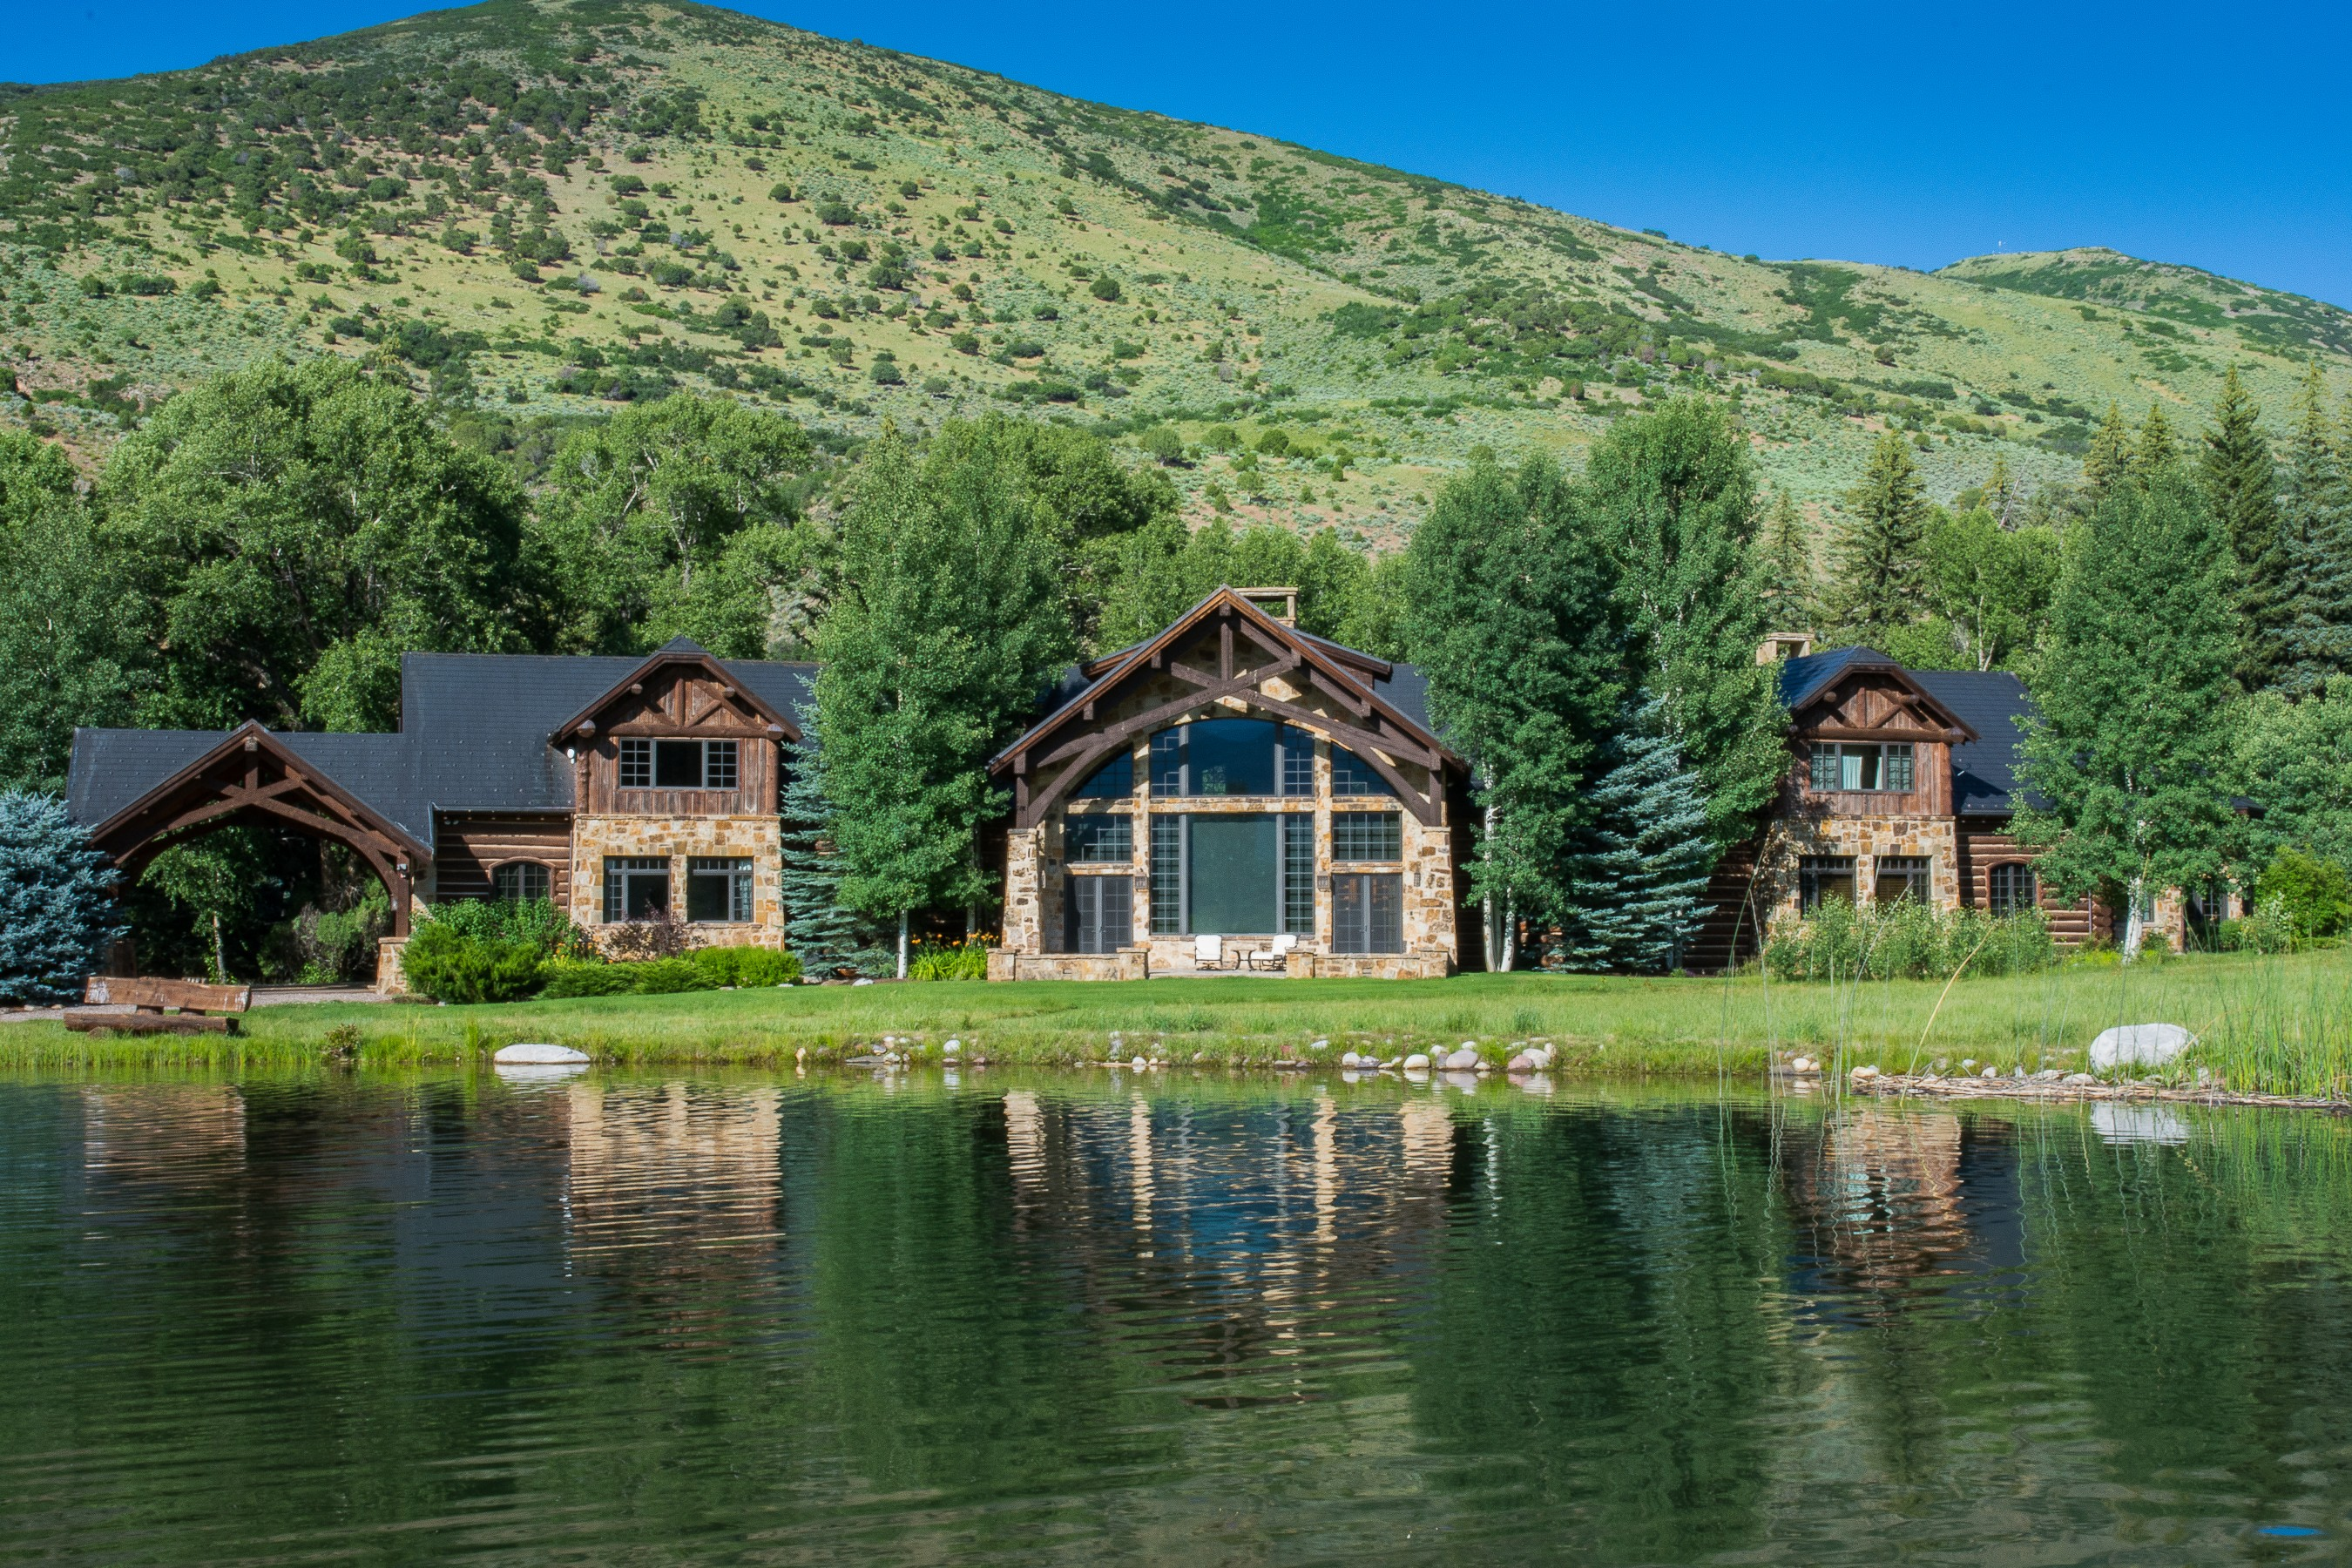 단독 가정 주택 용 매매 에 Spectacular Ranch on Snowmass Creek 2280/2288 Snowmass Creek Road Snowmass, 콜로라도, 81654 미국에서/약: Aspen